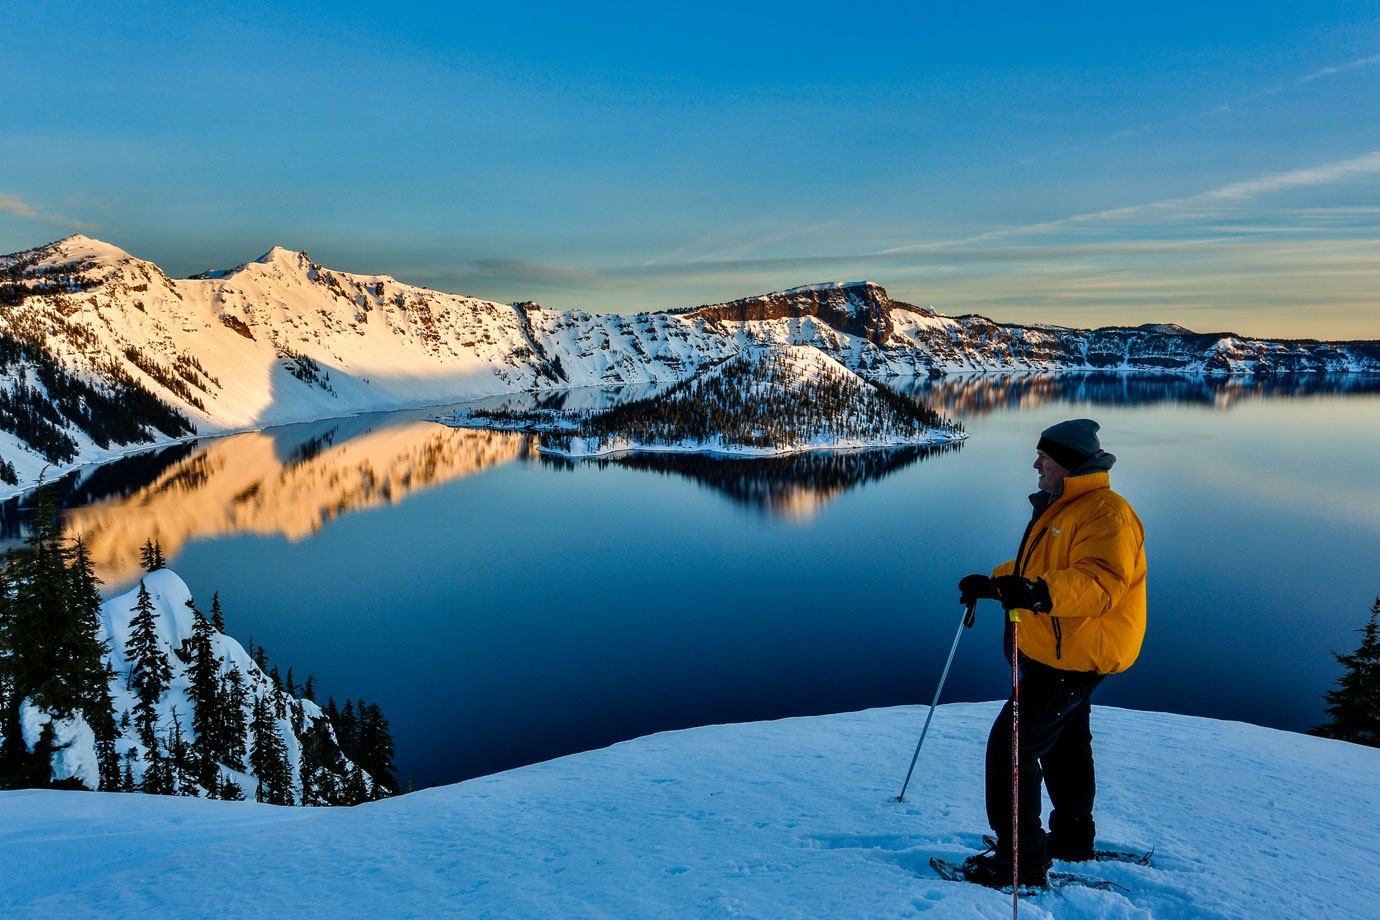 Snow shoeing at Crater Lake National Park